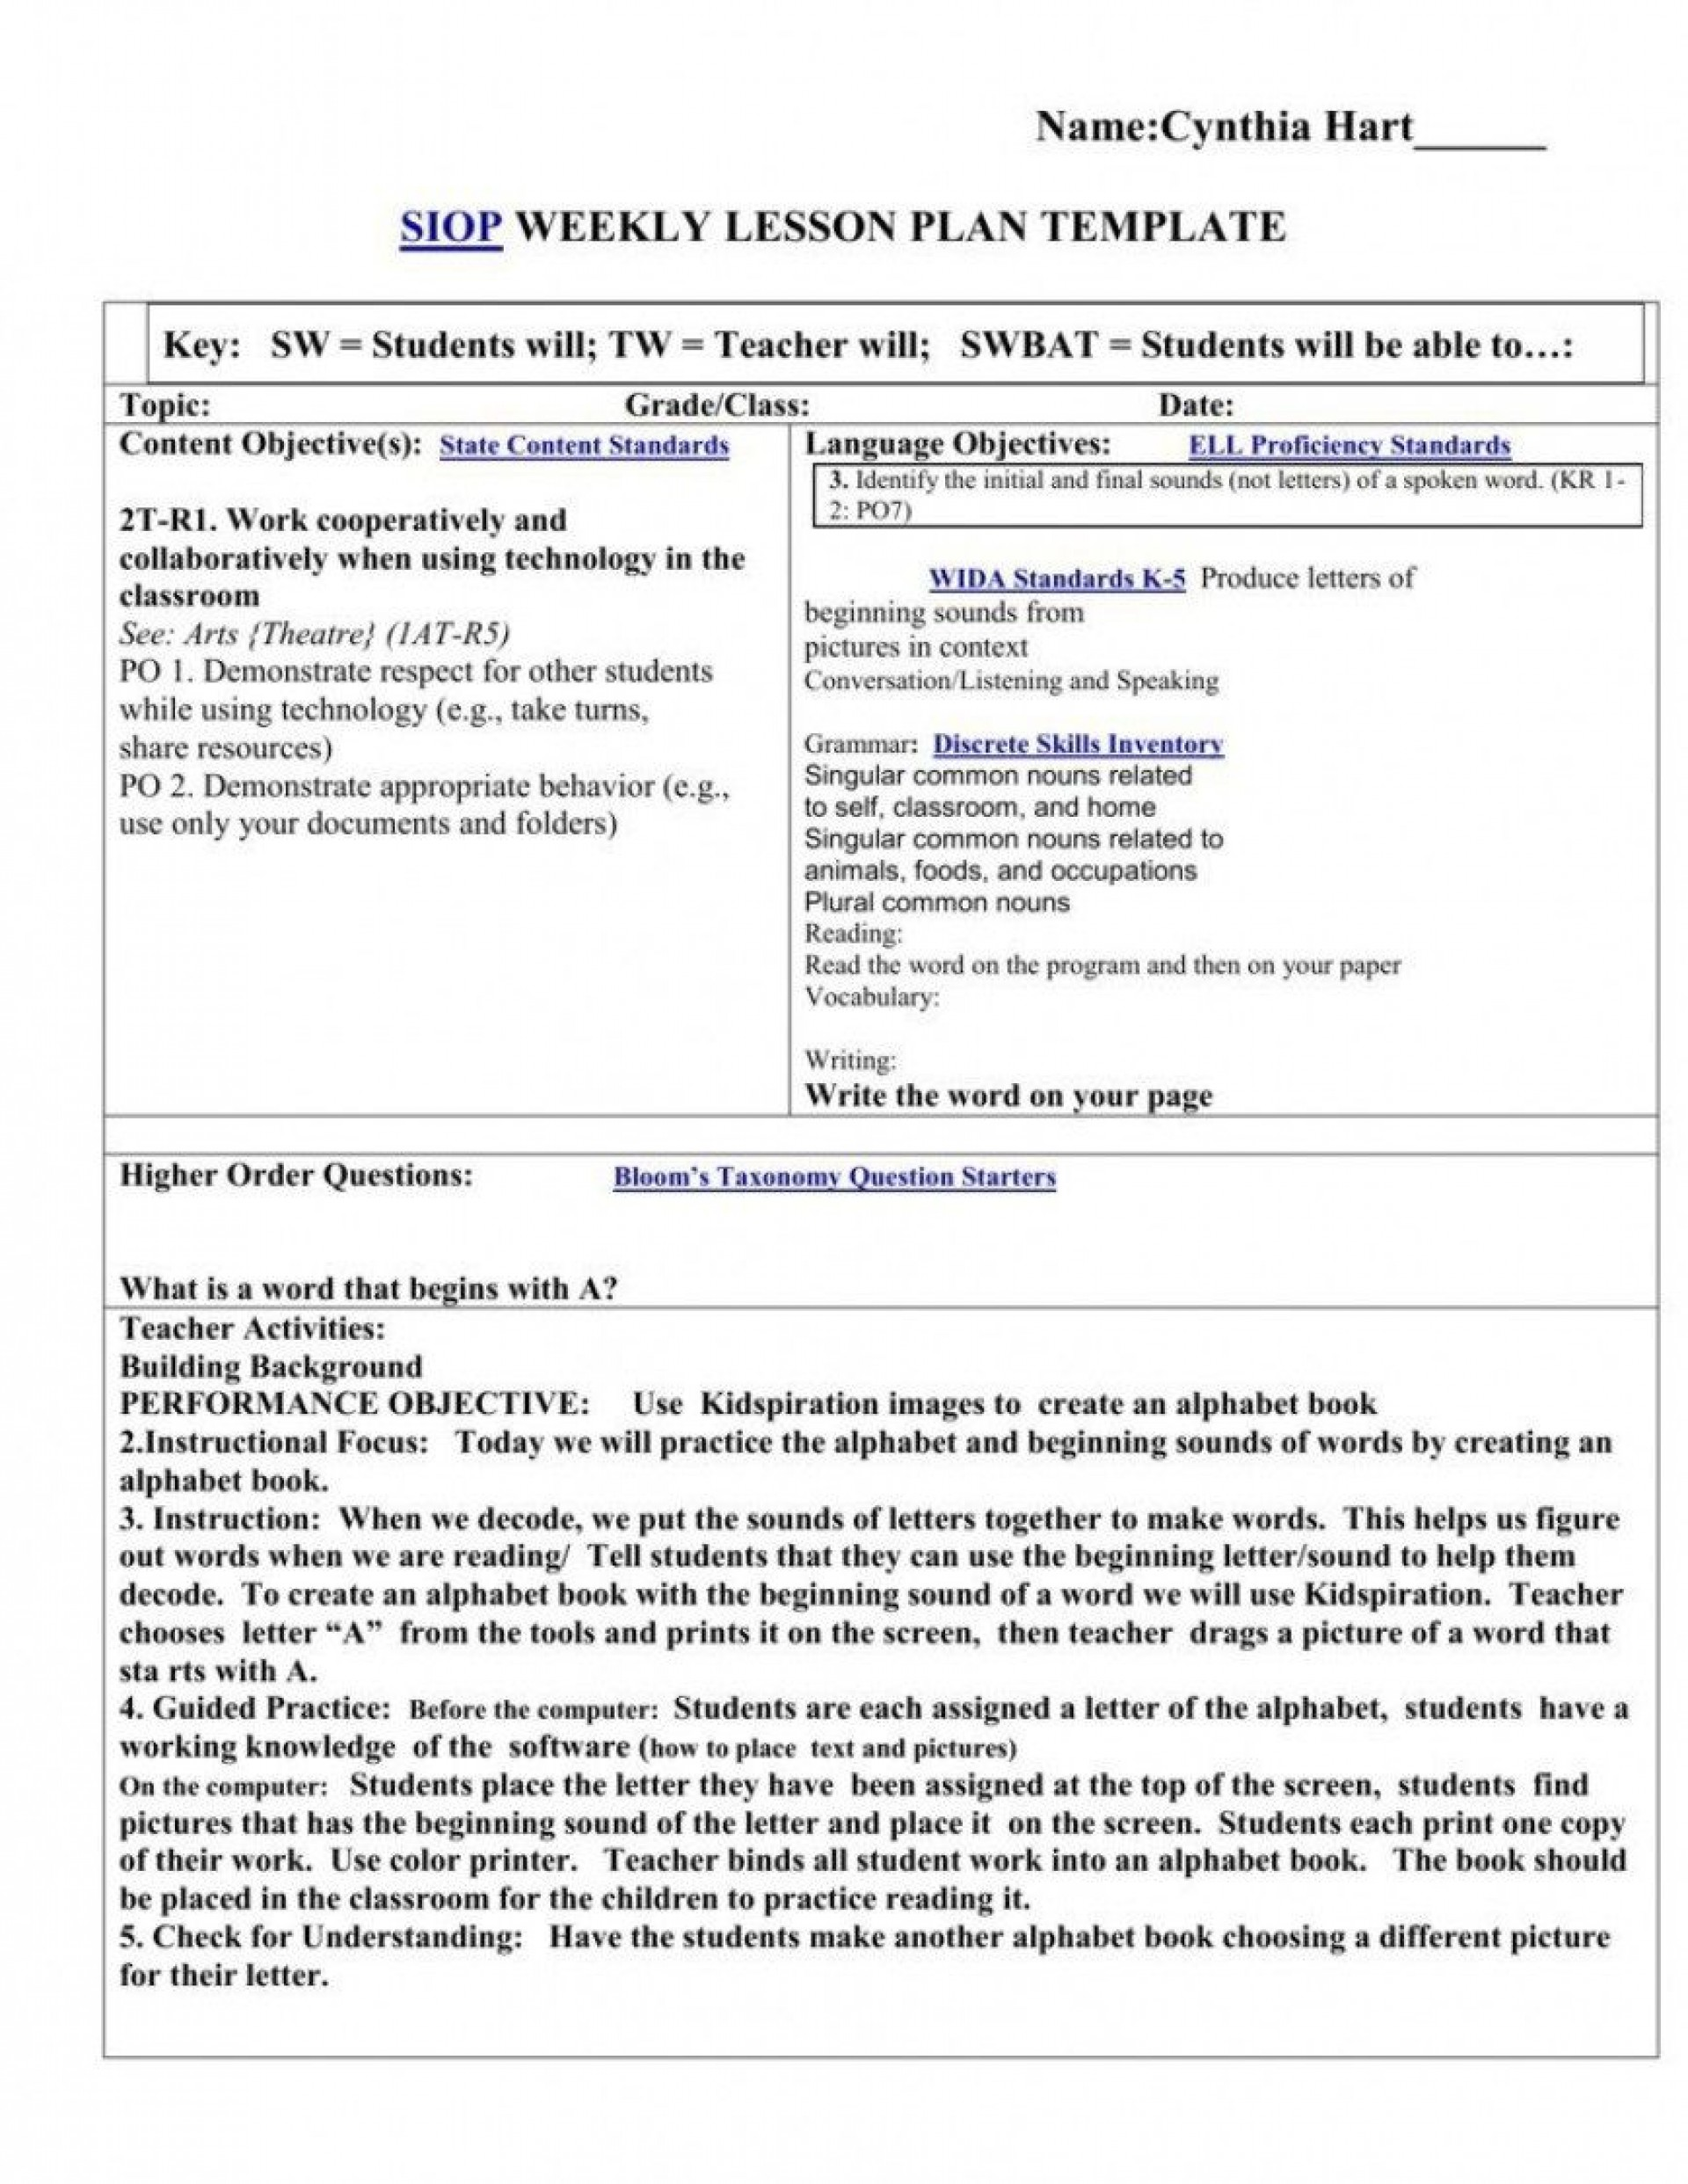 008 Archaicawful Siop Lesson Plan Example First Grade High Resolution  1st1920